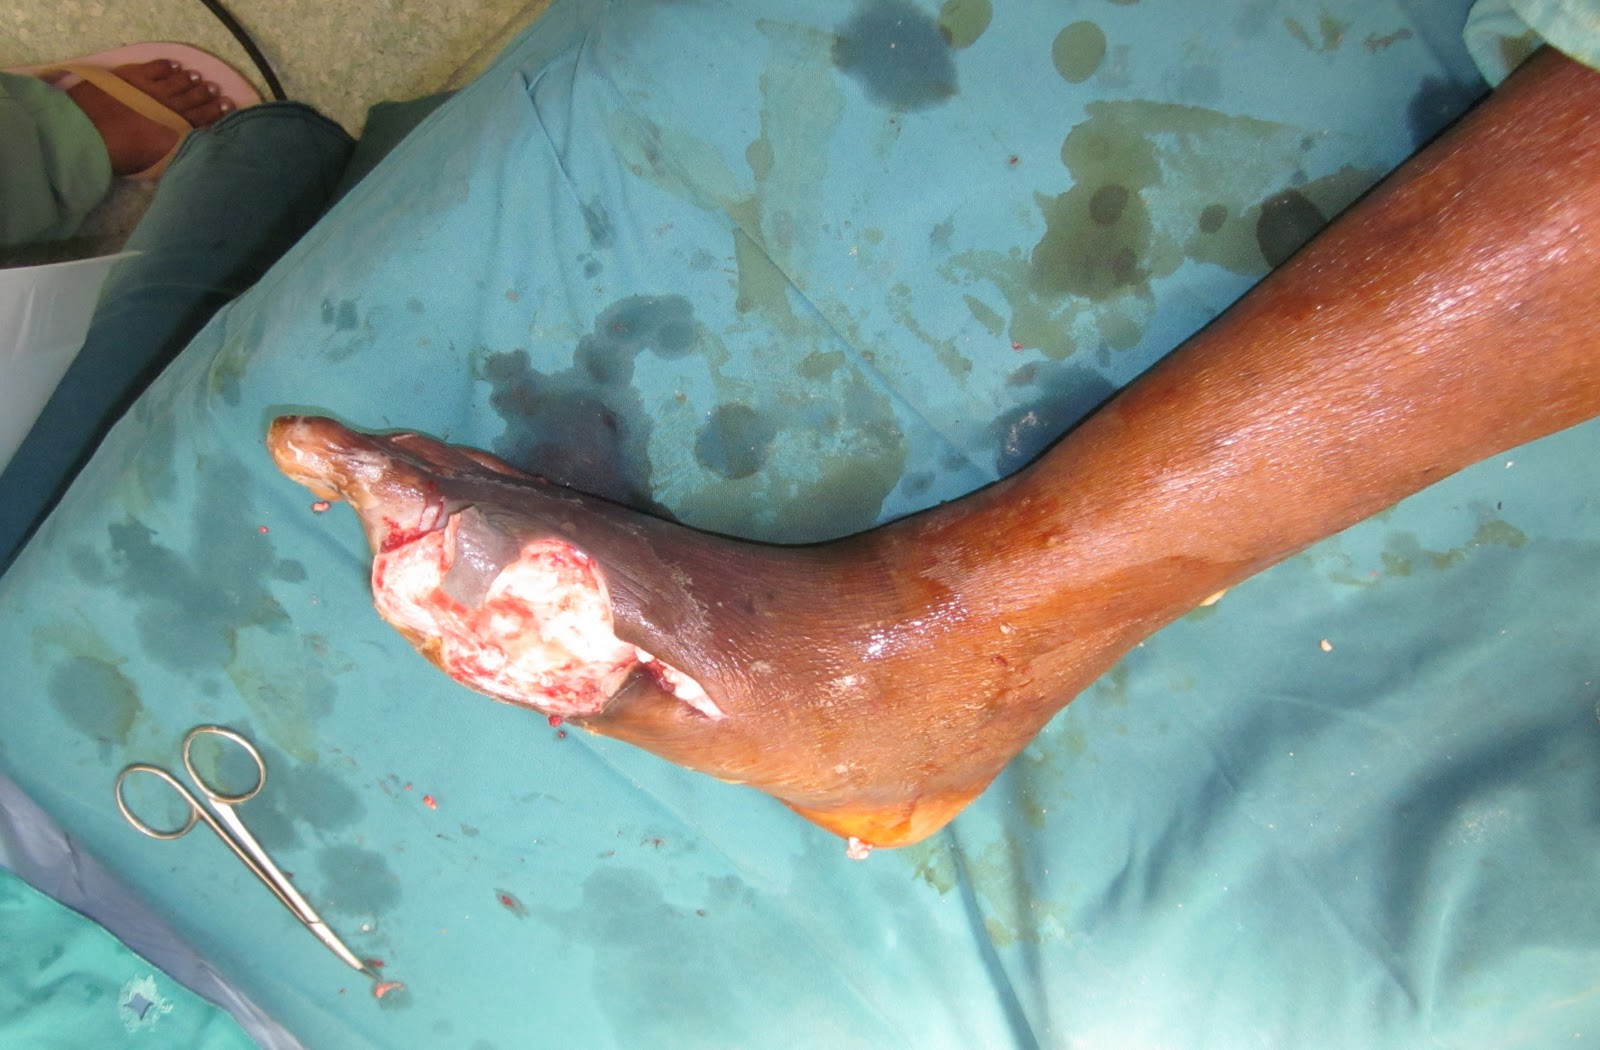 Gangrene Infection Causes, Symptoms & Treatment